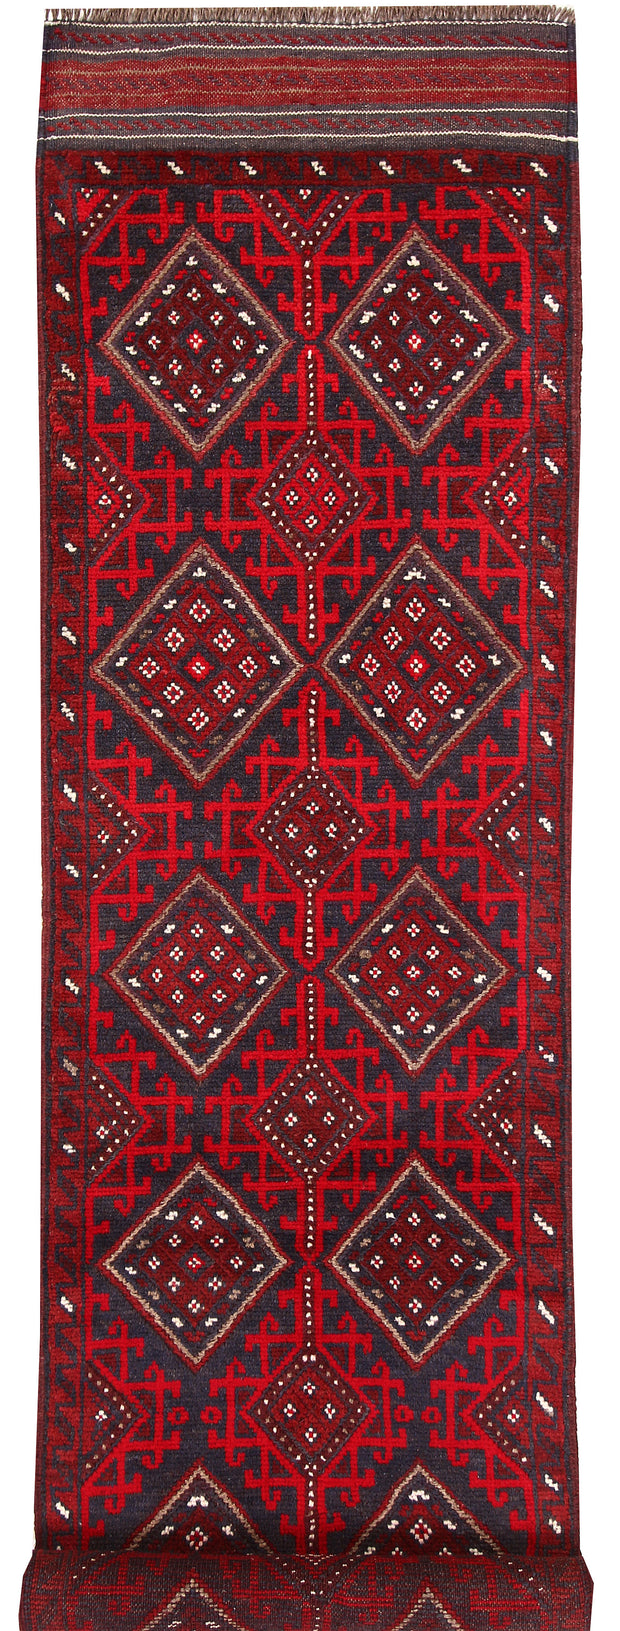 Dark Red Mashwani 2' 2 x 8' 8 - No. 63719 - ALRUG Rug Store